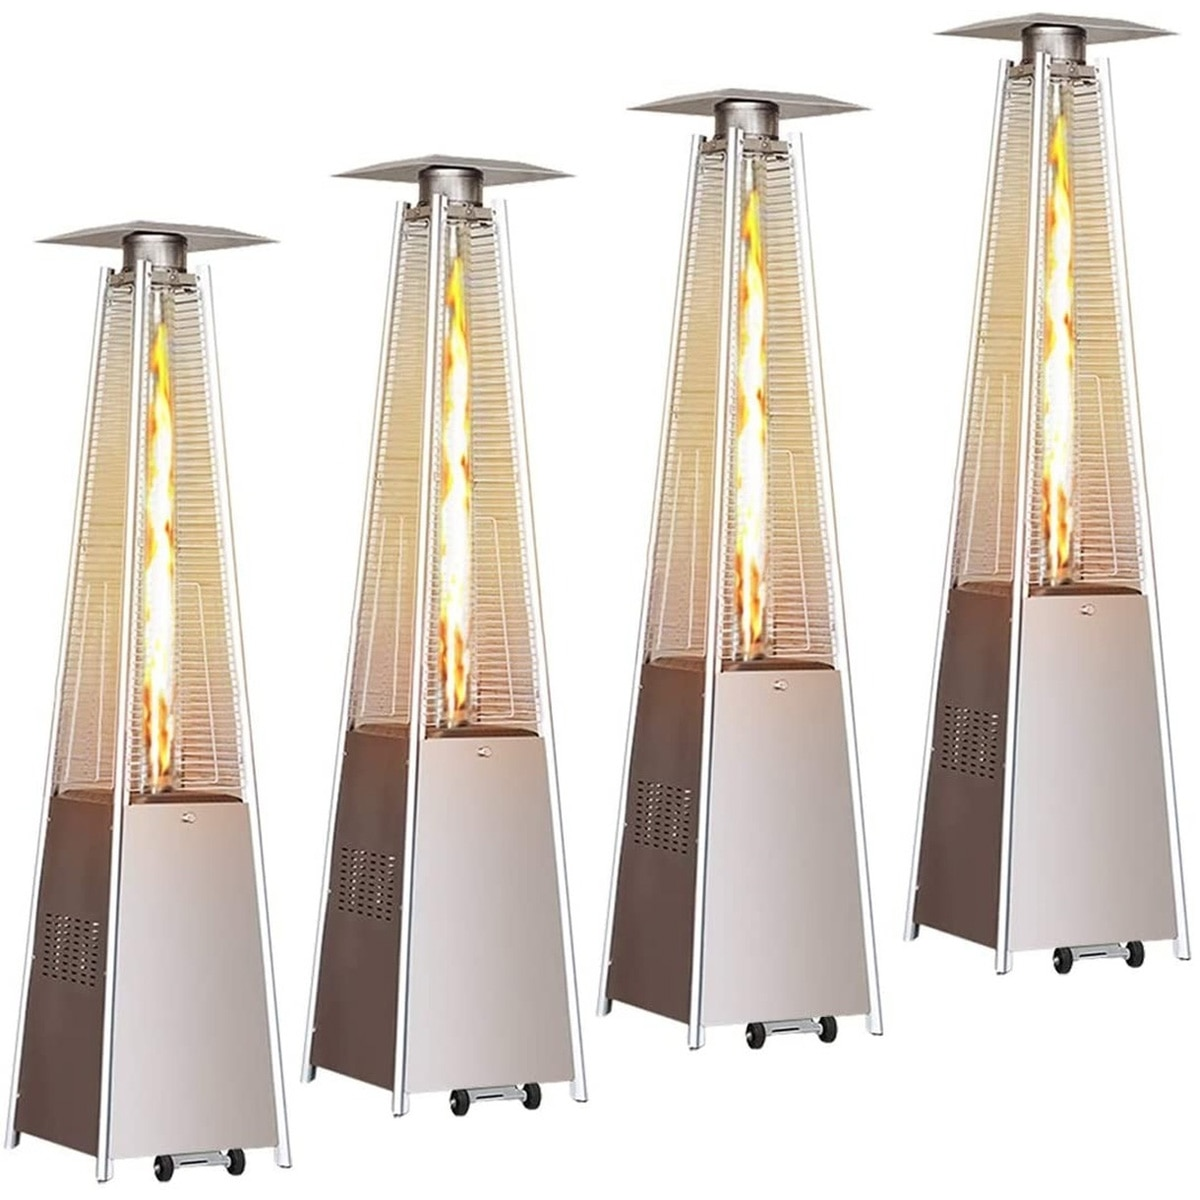 4PCS/Set Gas Patio Heaters Standing Heater Stove Propane Gas Portable Commercial Heater 46000 BTU for Winter Outdoor Party